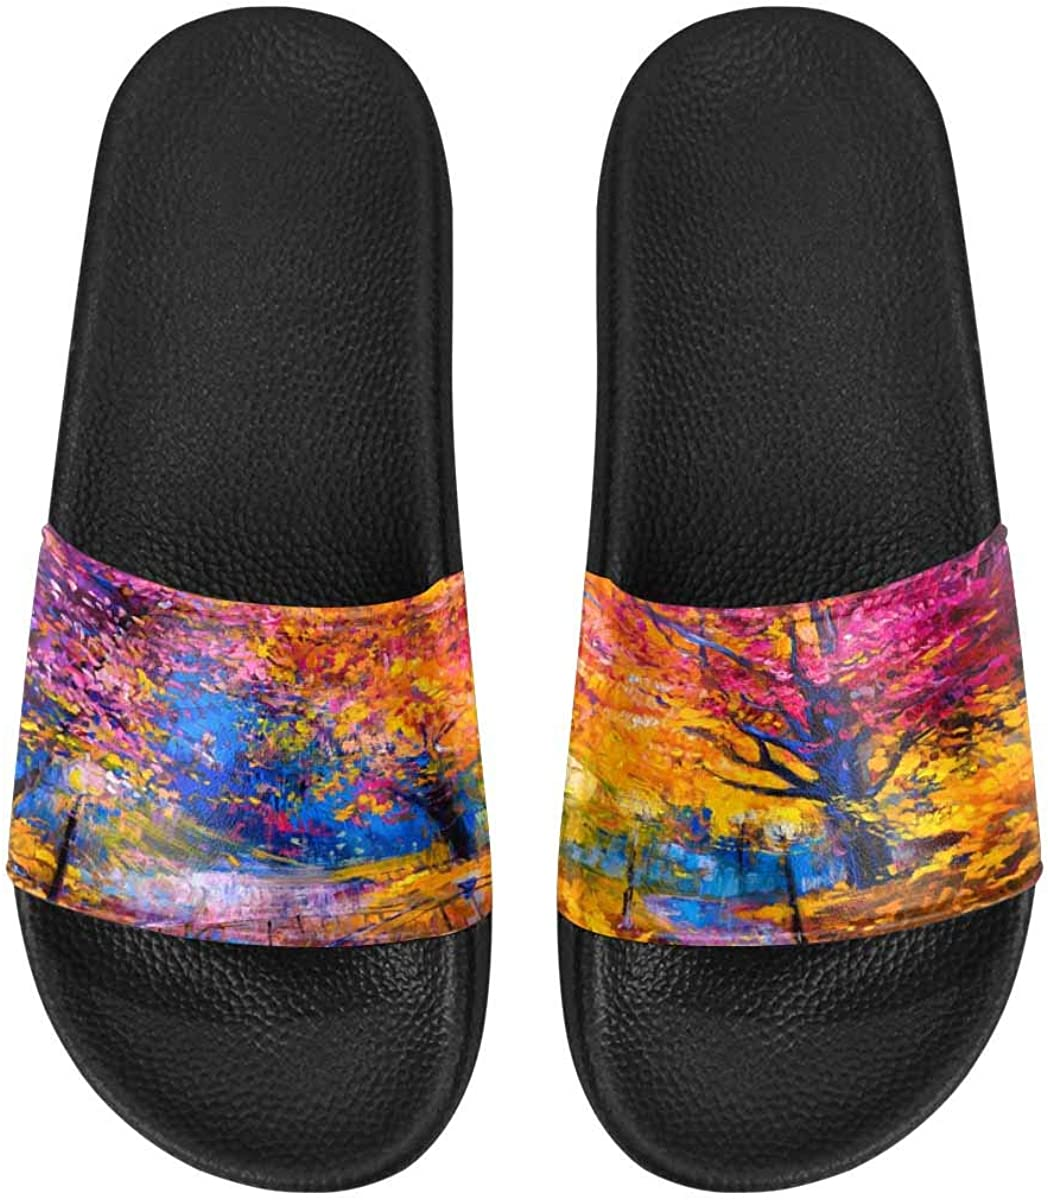 InterestPrint Women's Stylish Slipper Sandals Made from Soft Material Color Pineapple Summer